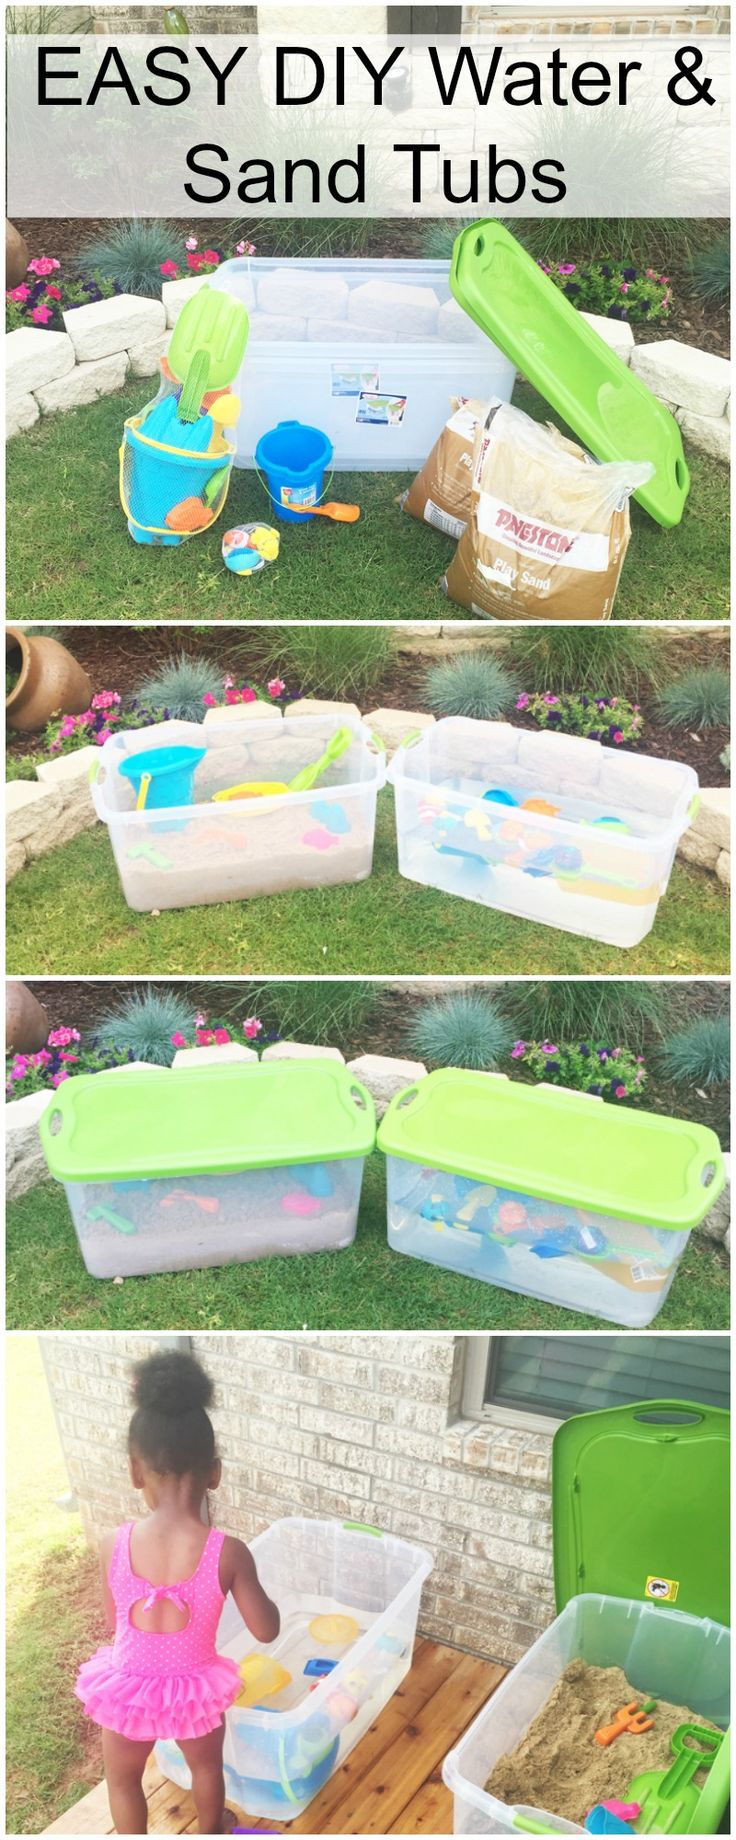 DIY Water And Sand Table   Easy Water And Sand Tubs Perfect For Winter In  The